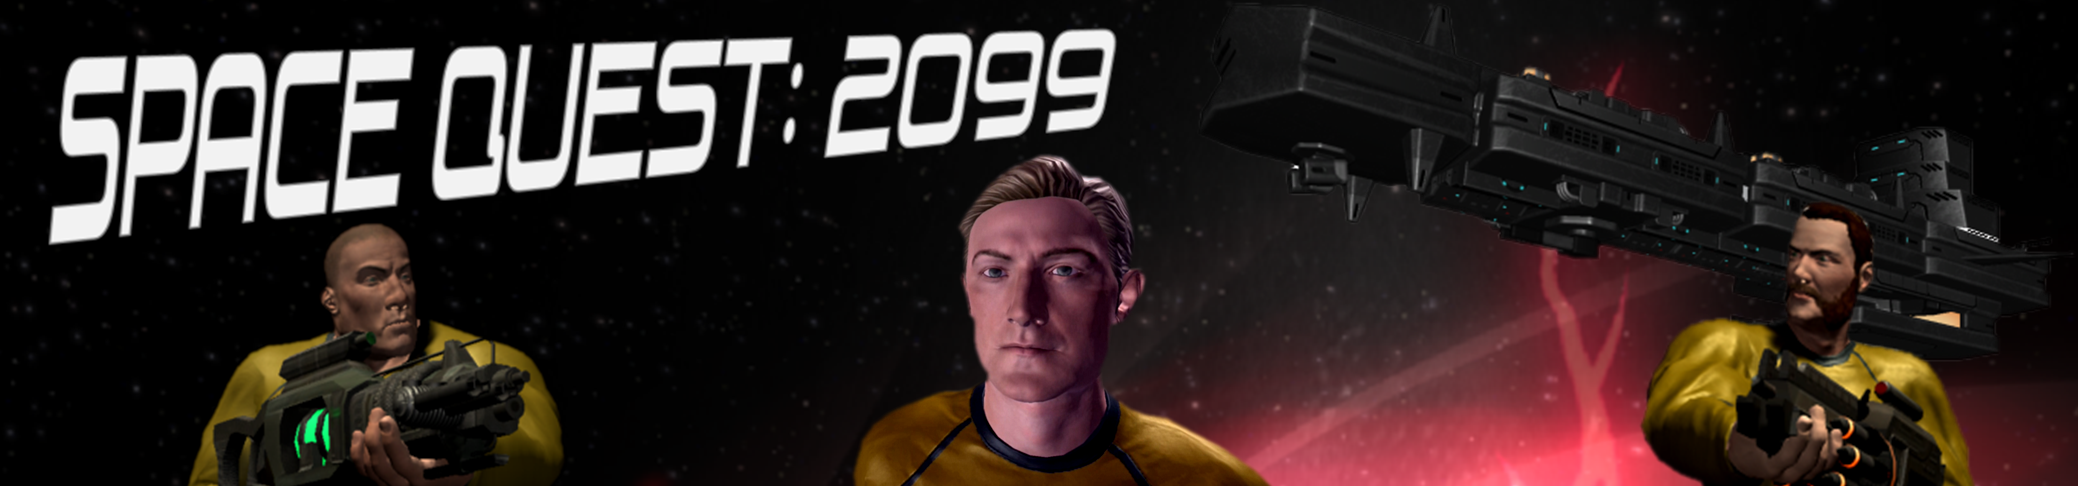 Space Quest: 2099